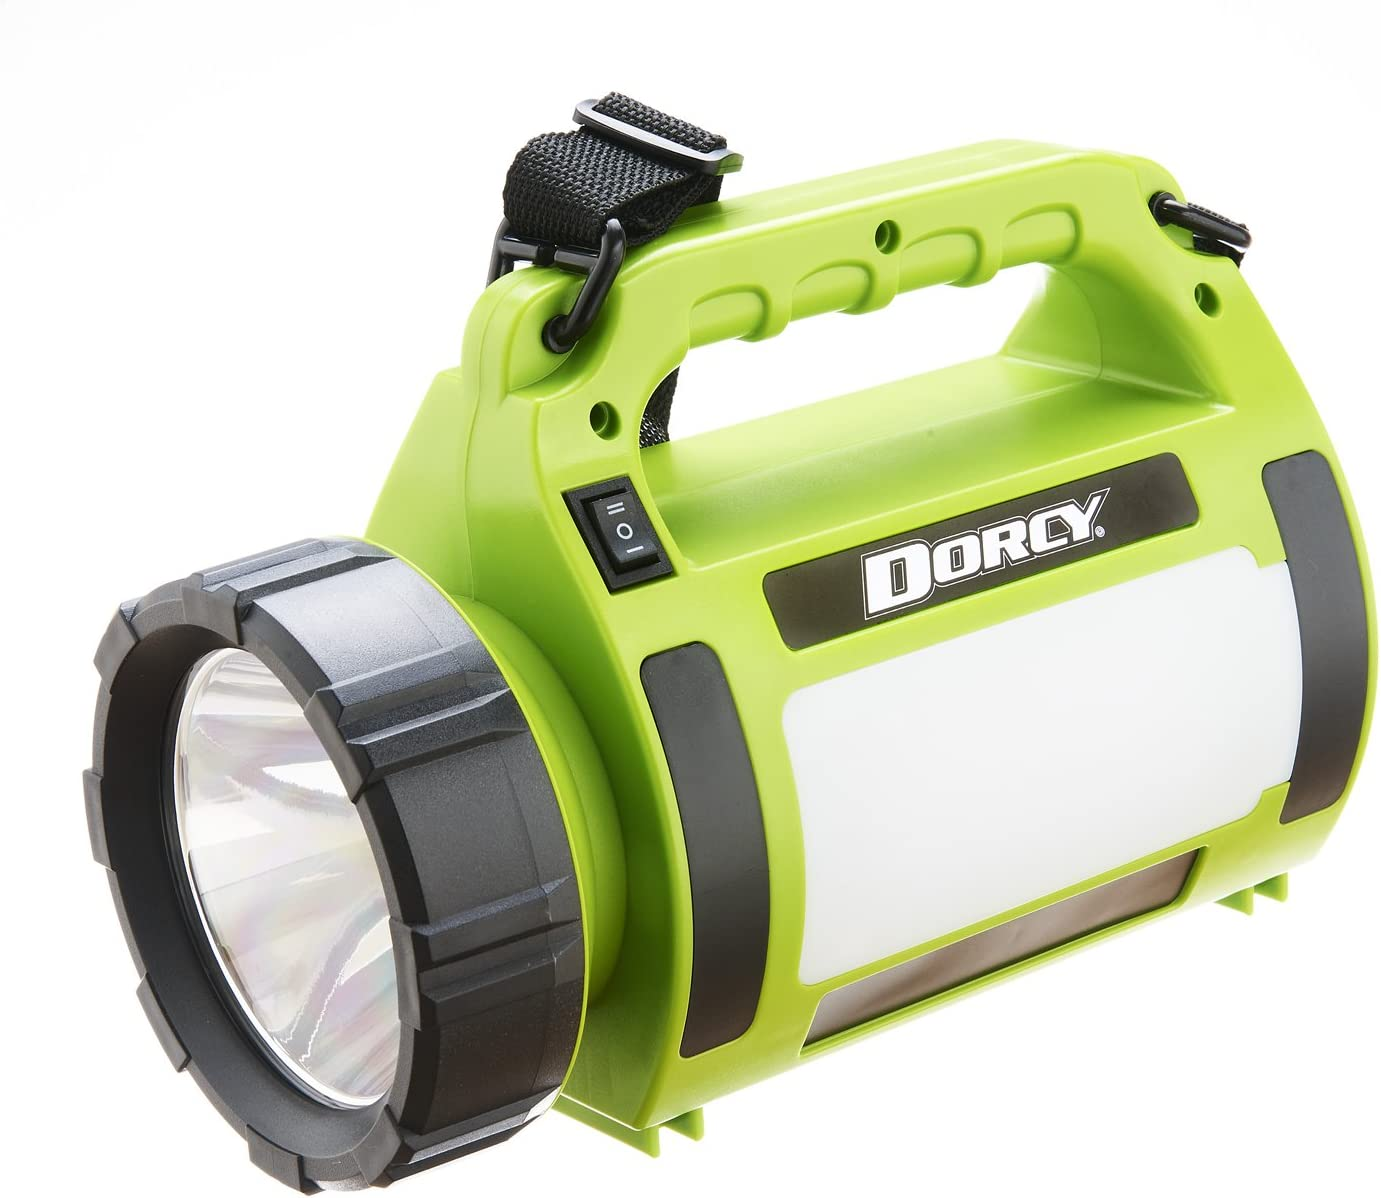 Dorcy USB Rechargeable 700 Lumen Power Bank Emergency Lantern